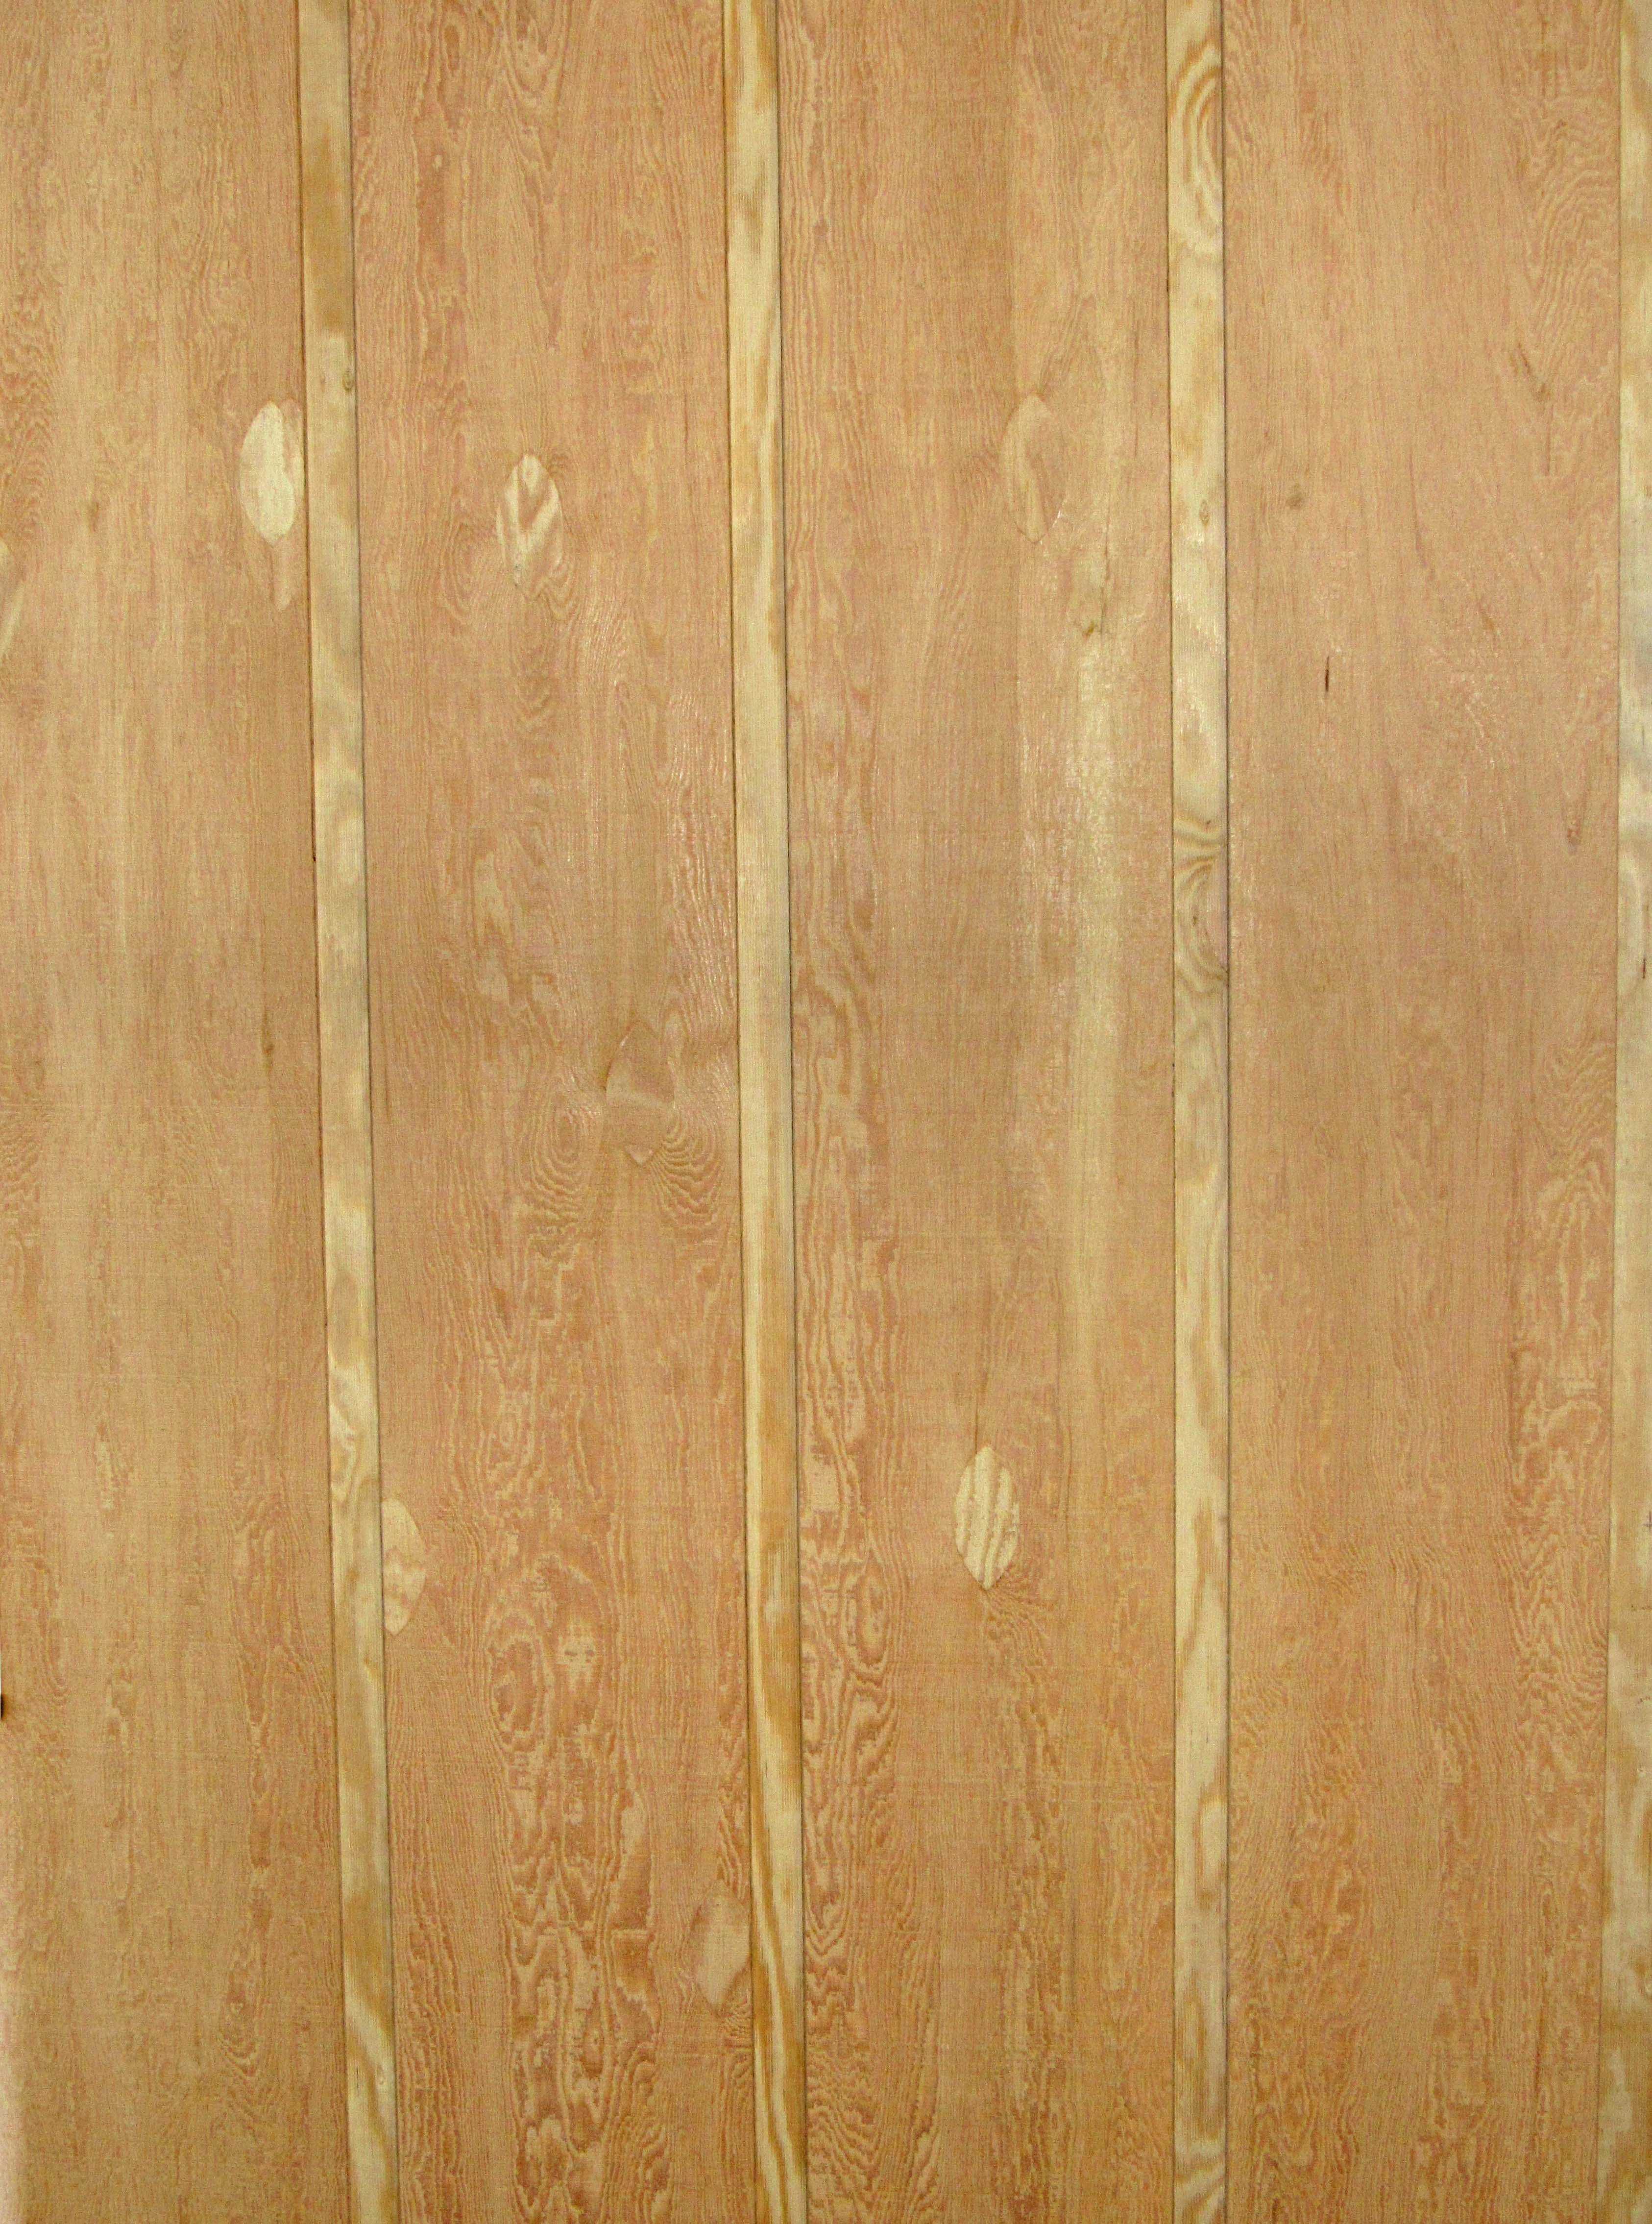 Panel Siding Archives - Capitol City Lumber